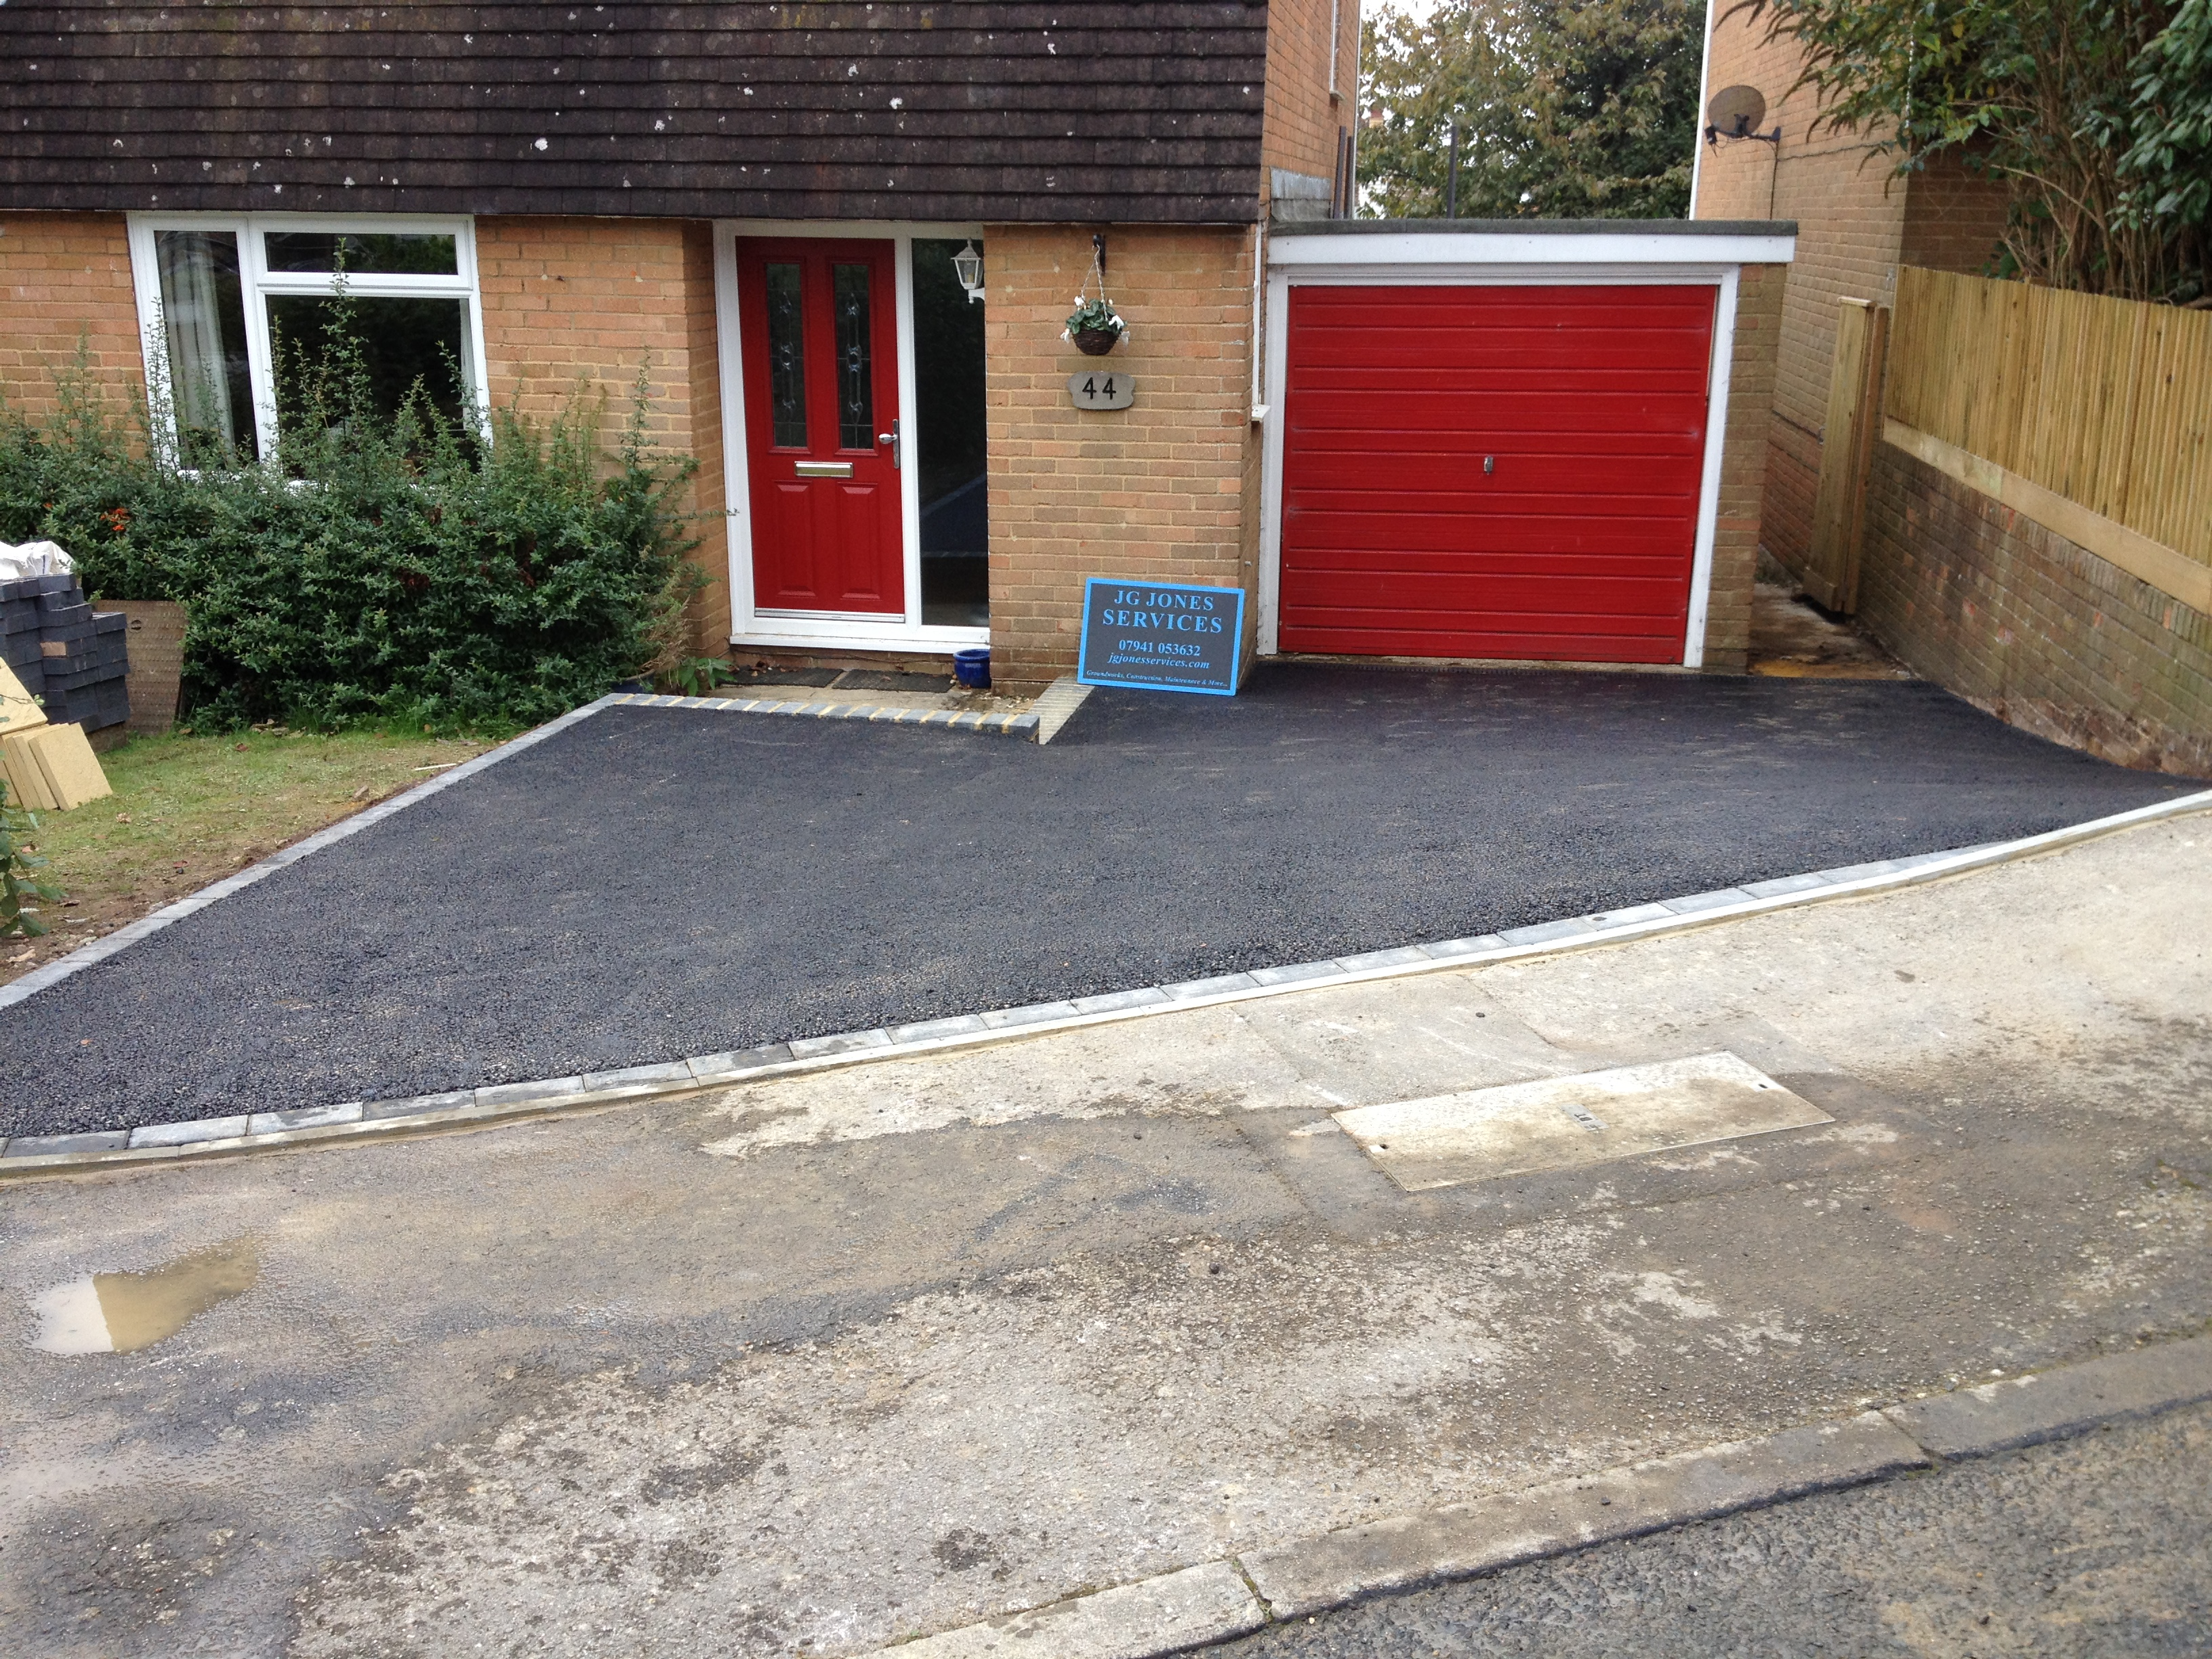 Sloped residential driveway j g jones groundwork services for Sloped driveway options